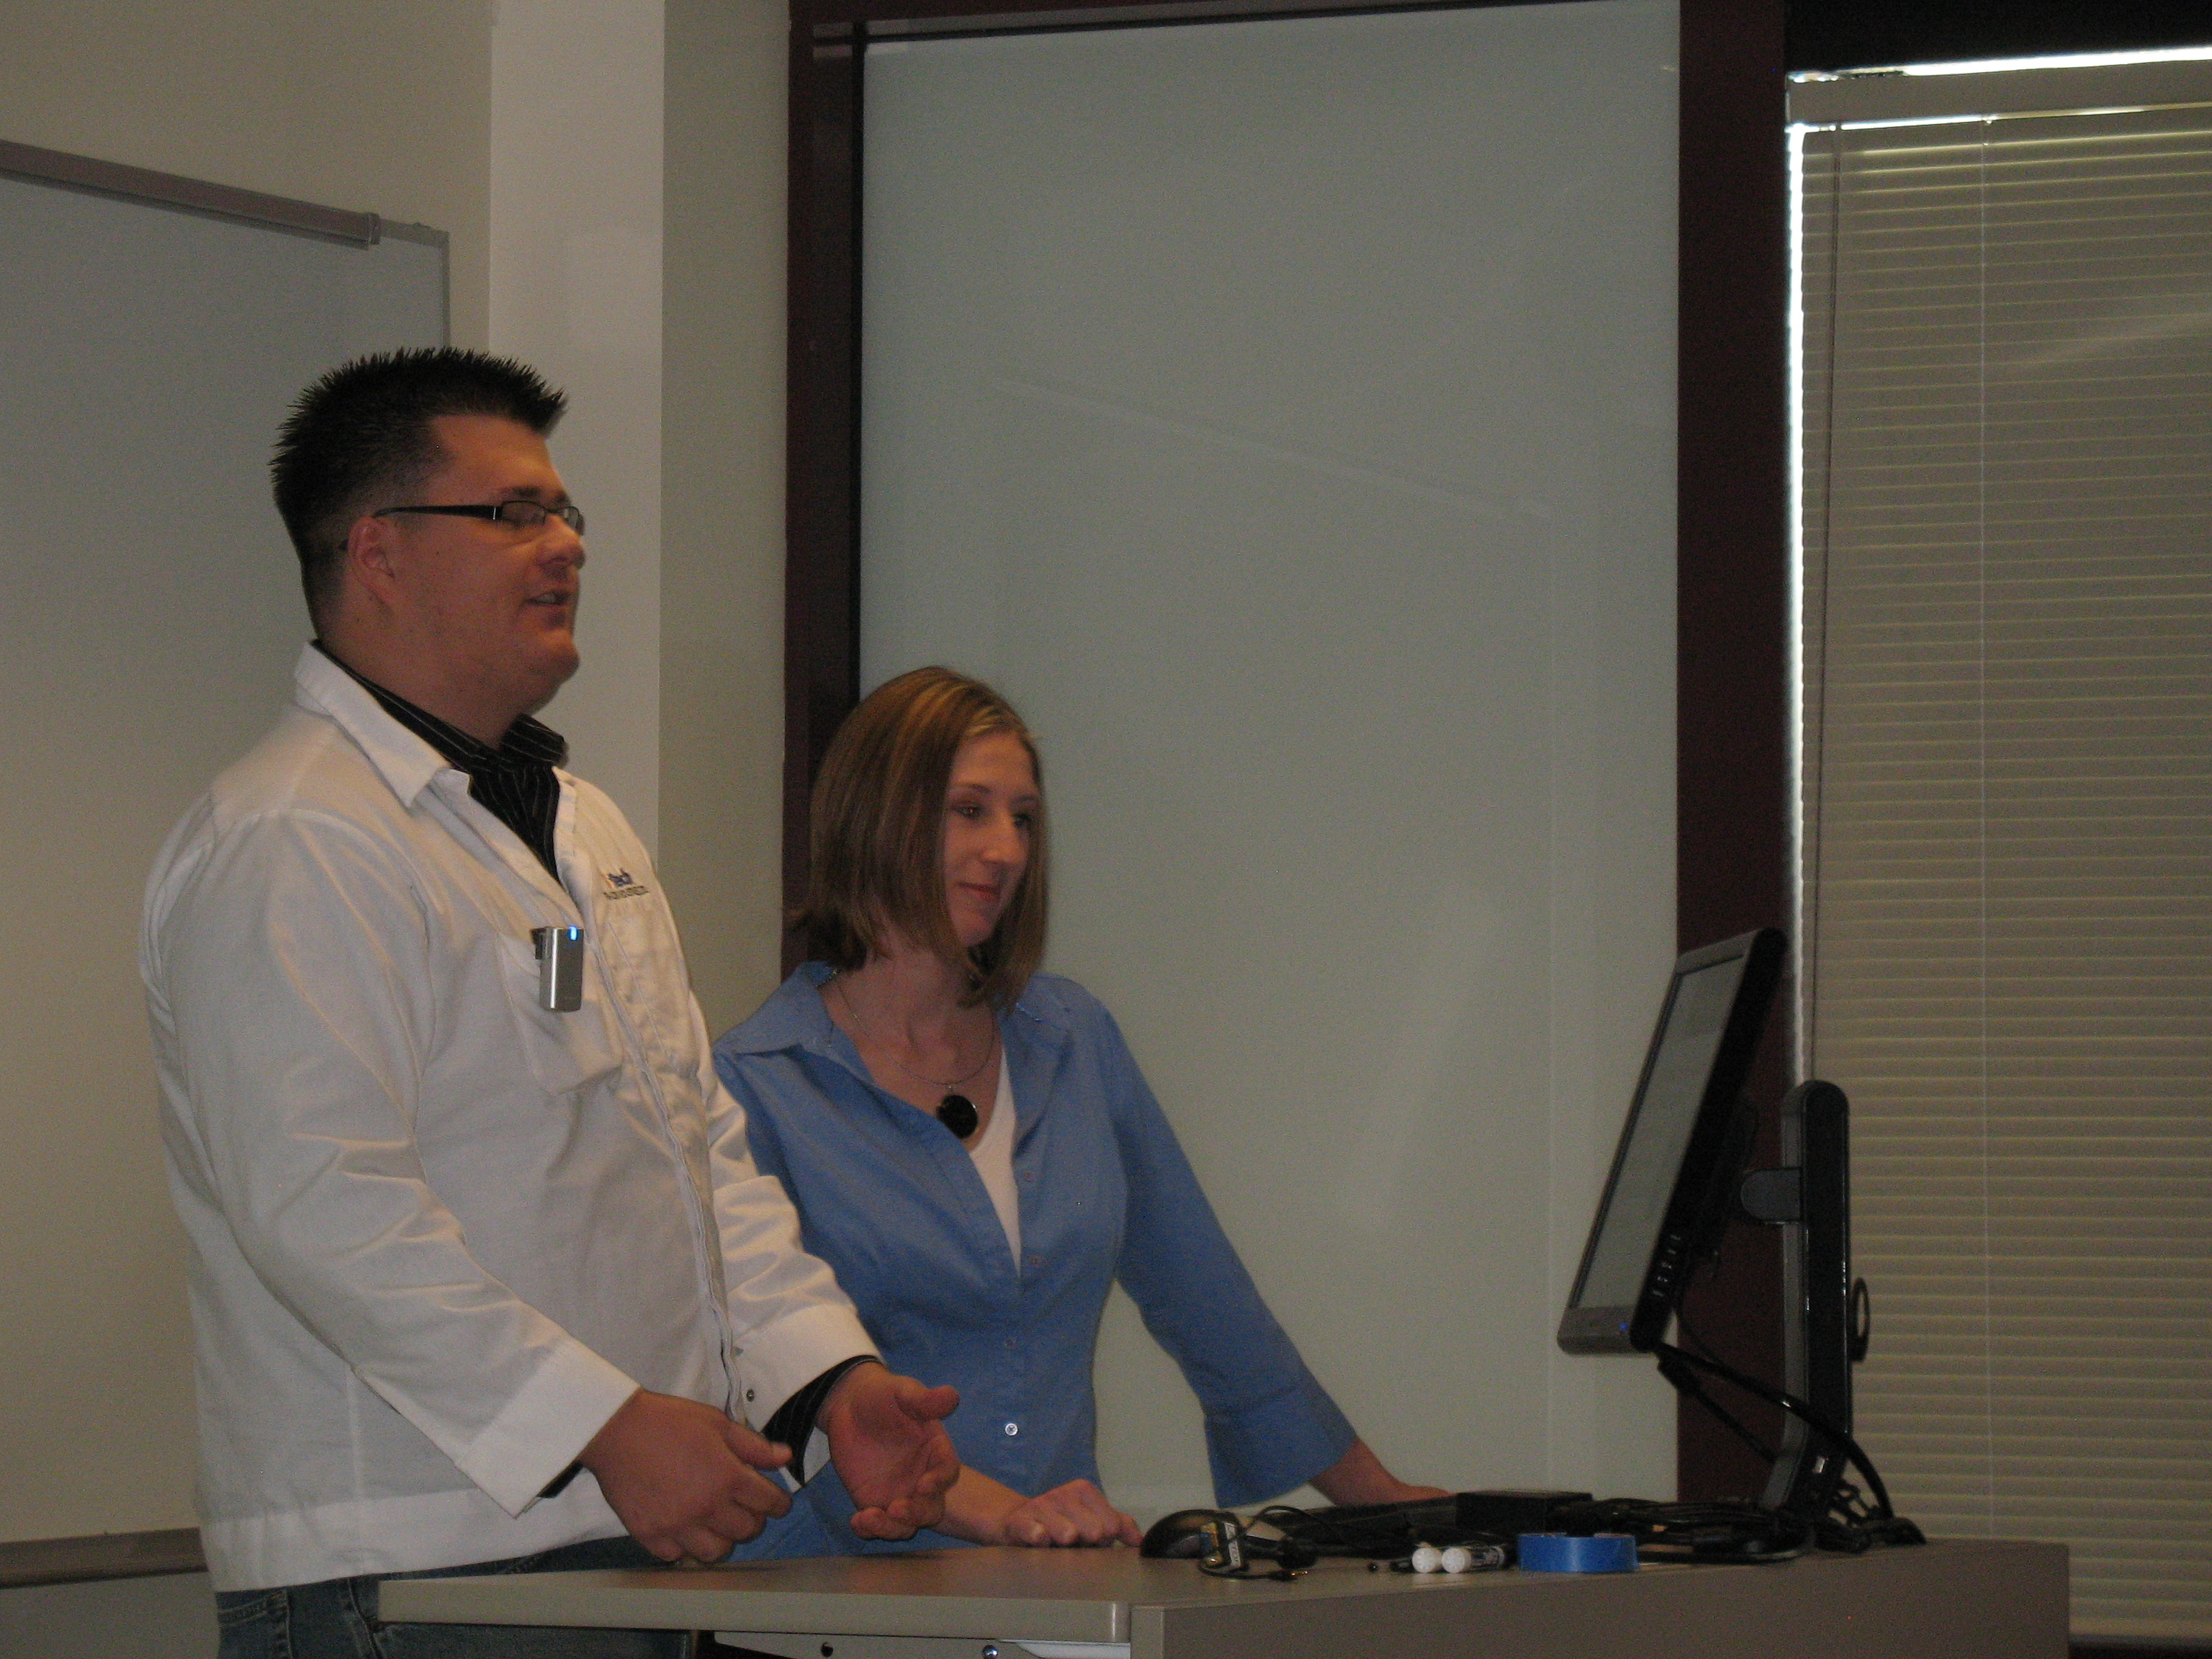 Lee Paulson, left, and Wendy Lowery, both from Tri-Con, explain their research needs to Environmental Studies students.